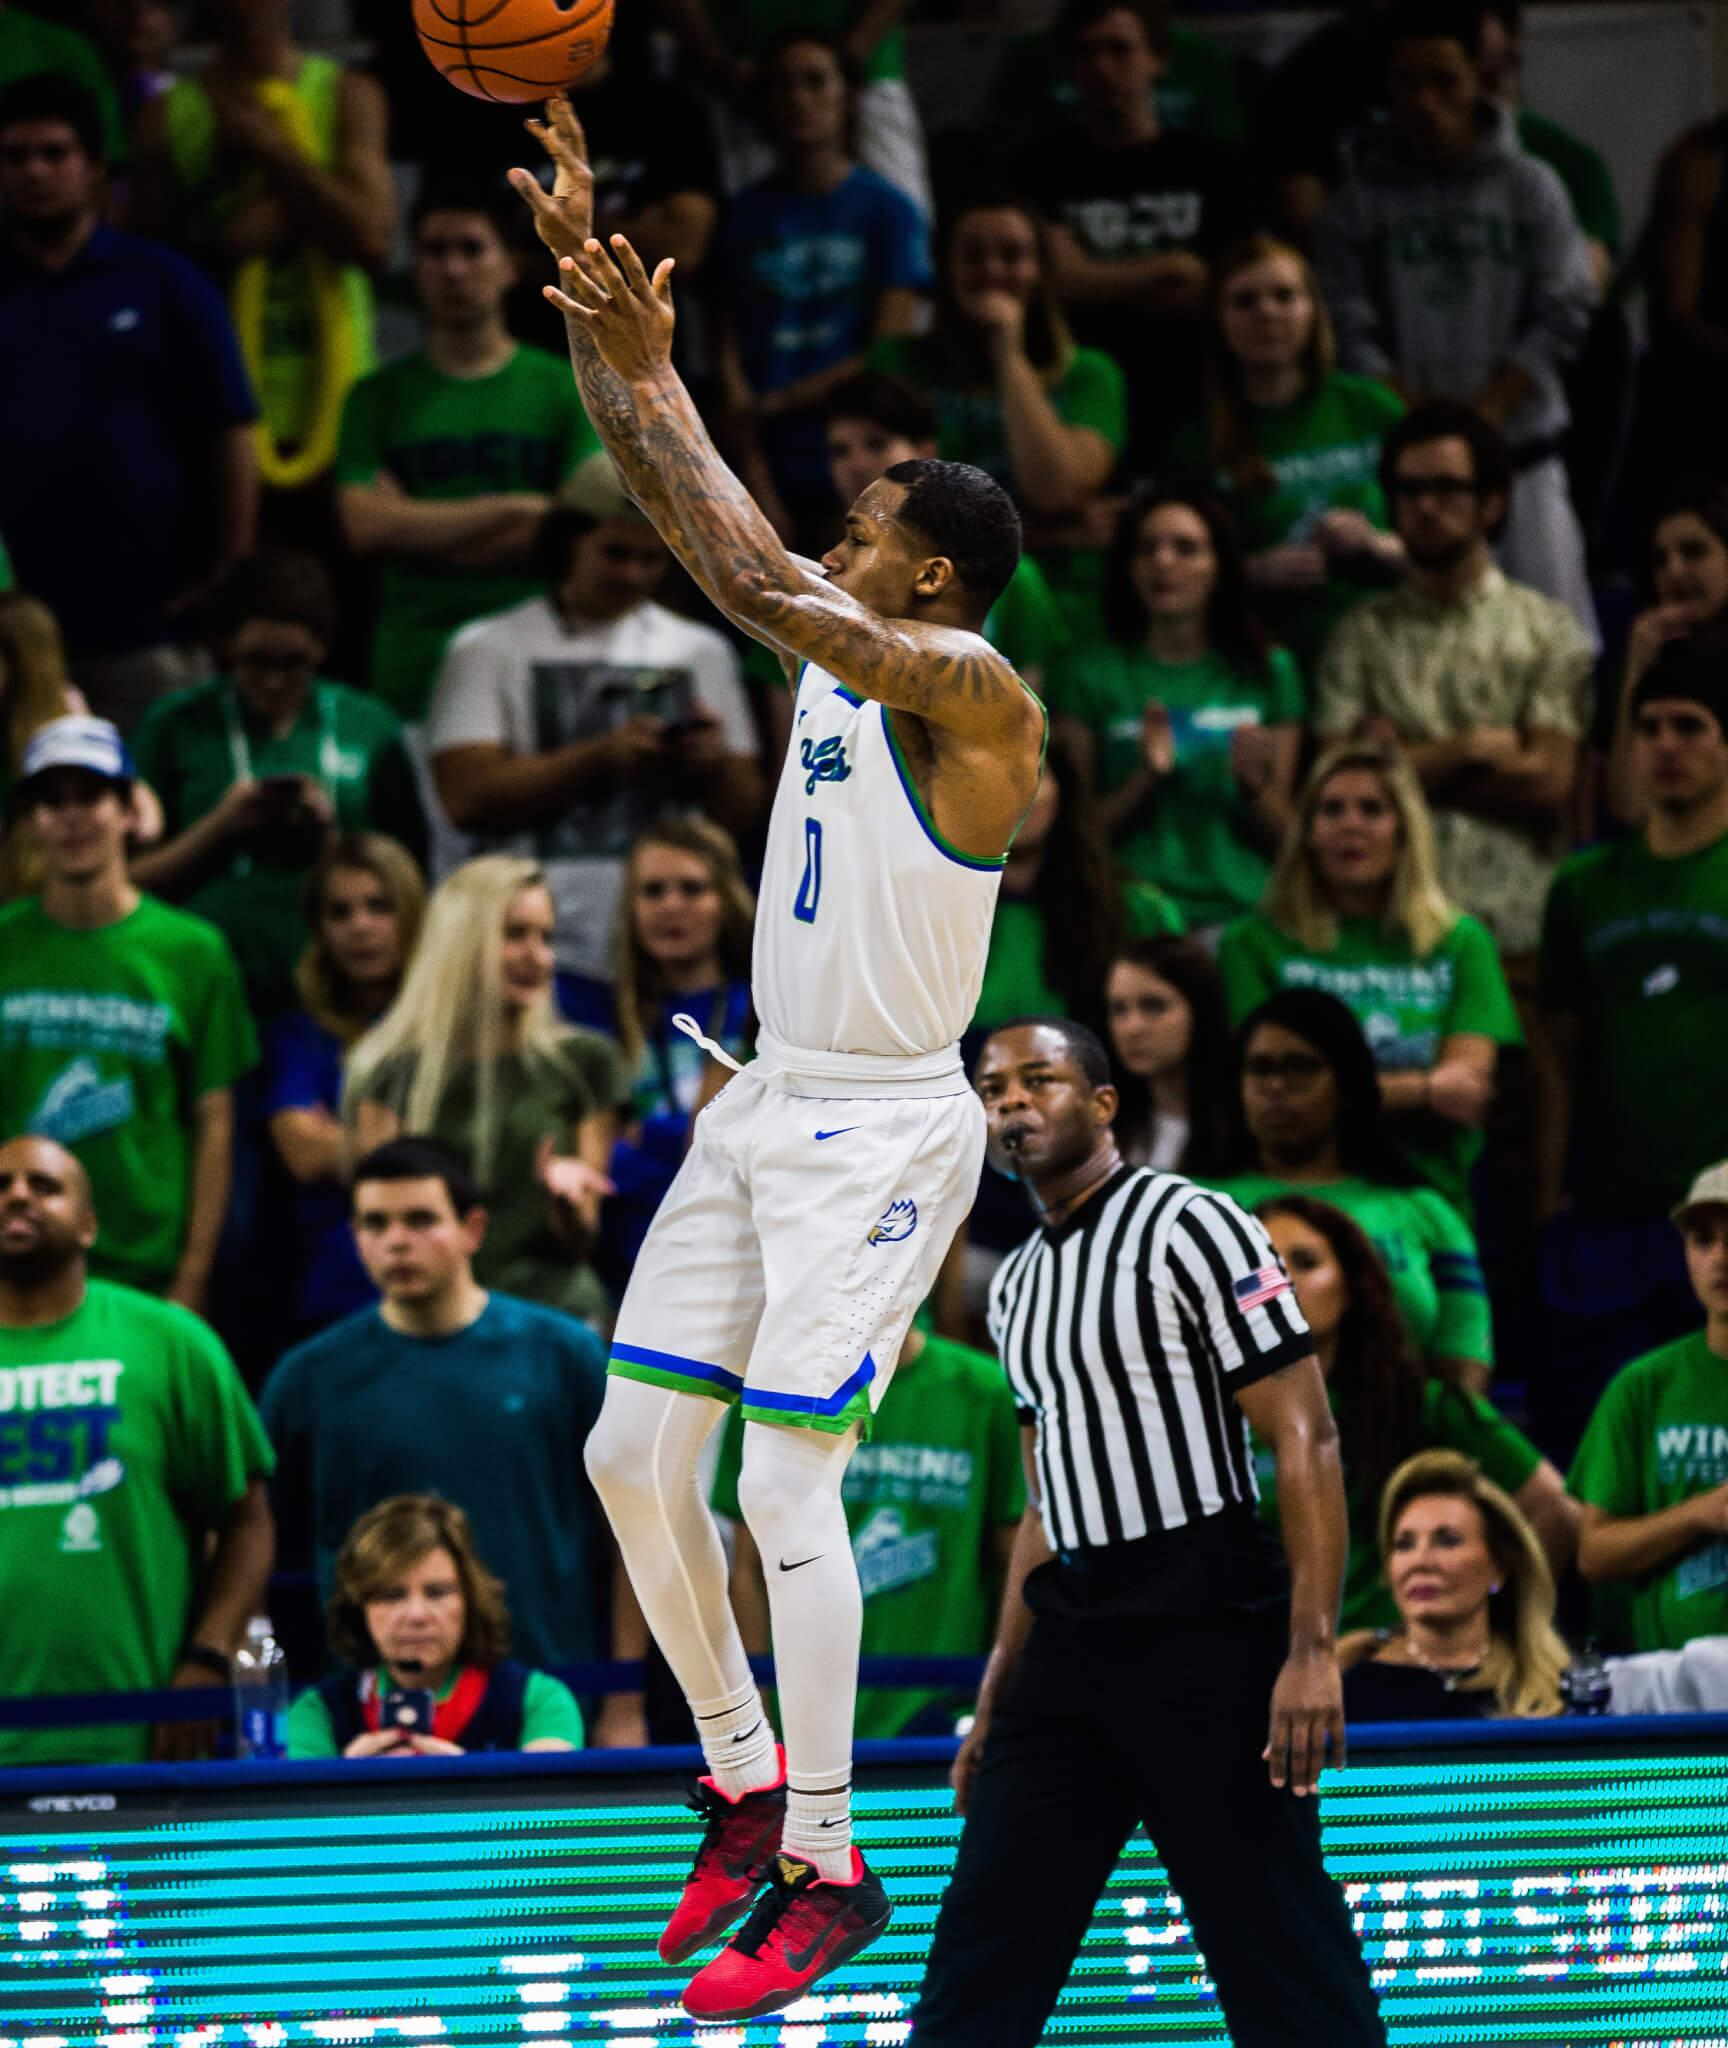 Brandon Goodwin's game winner propels the FGCU men's basketball to the top of the ASUN standings